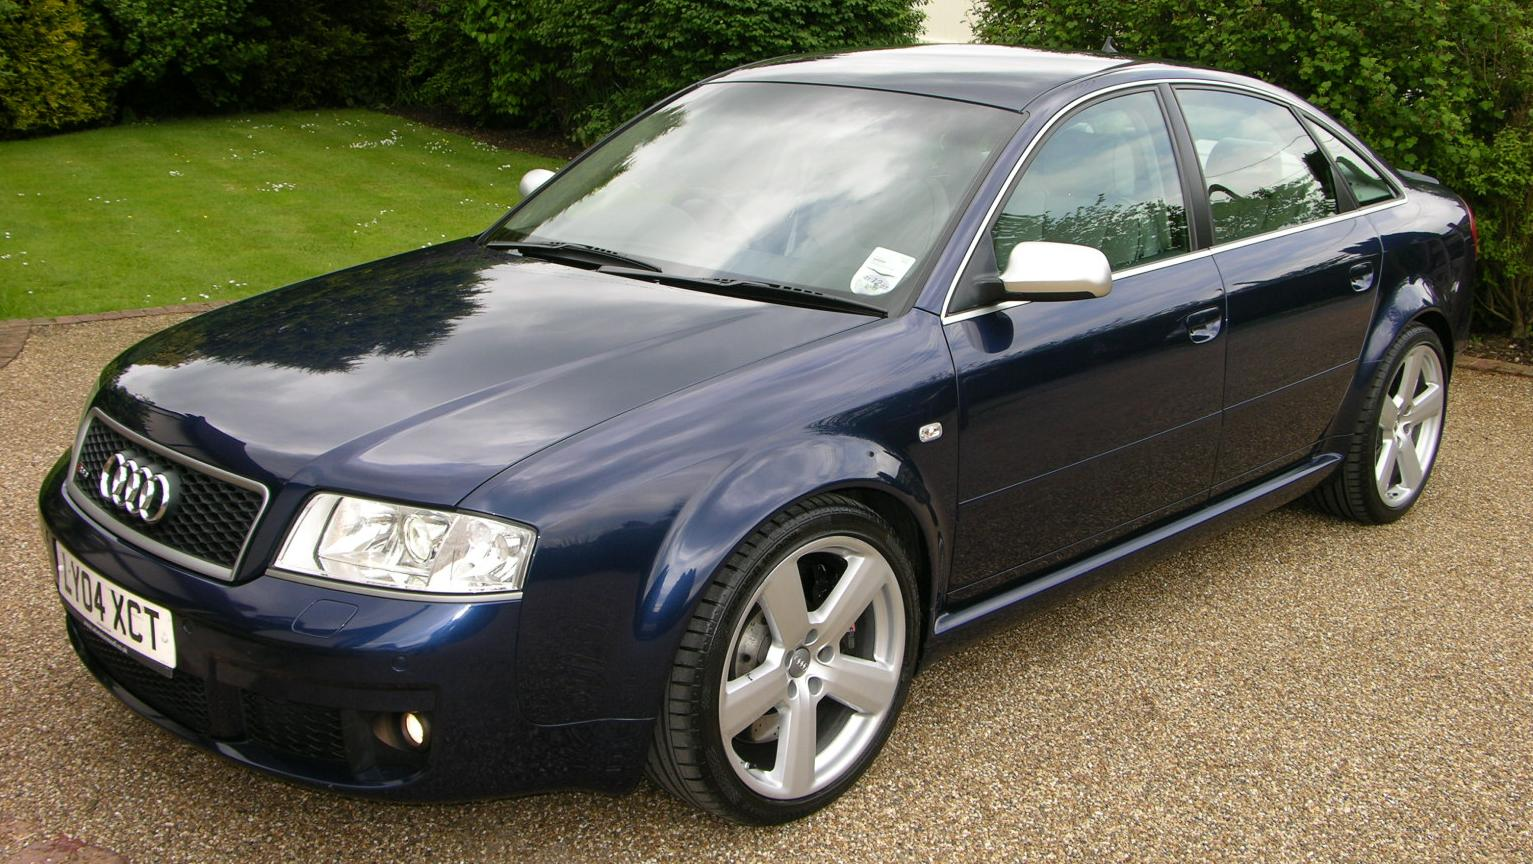 Description Blue Audi RS6 C5 sedan fl.jpg